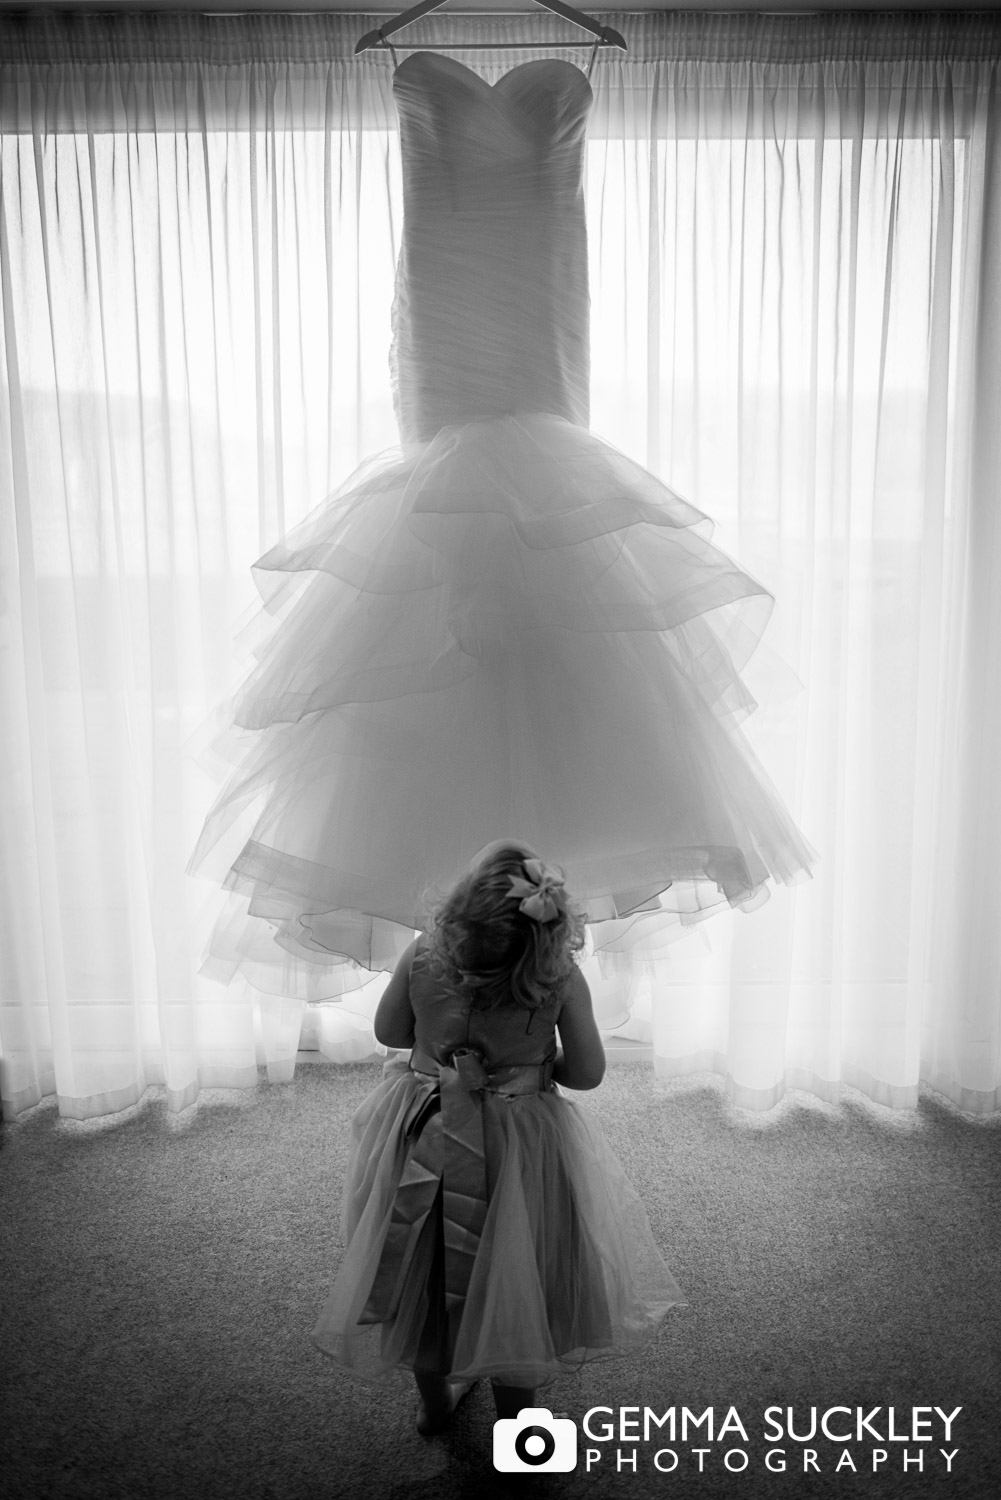 flower girl look up at wedding dress at Coniston hotel